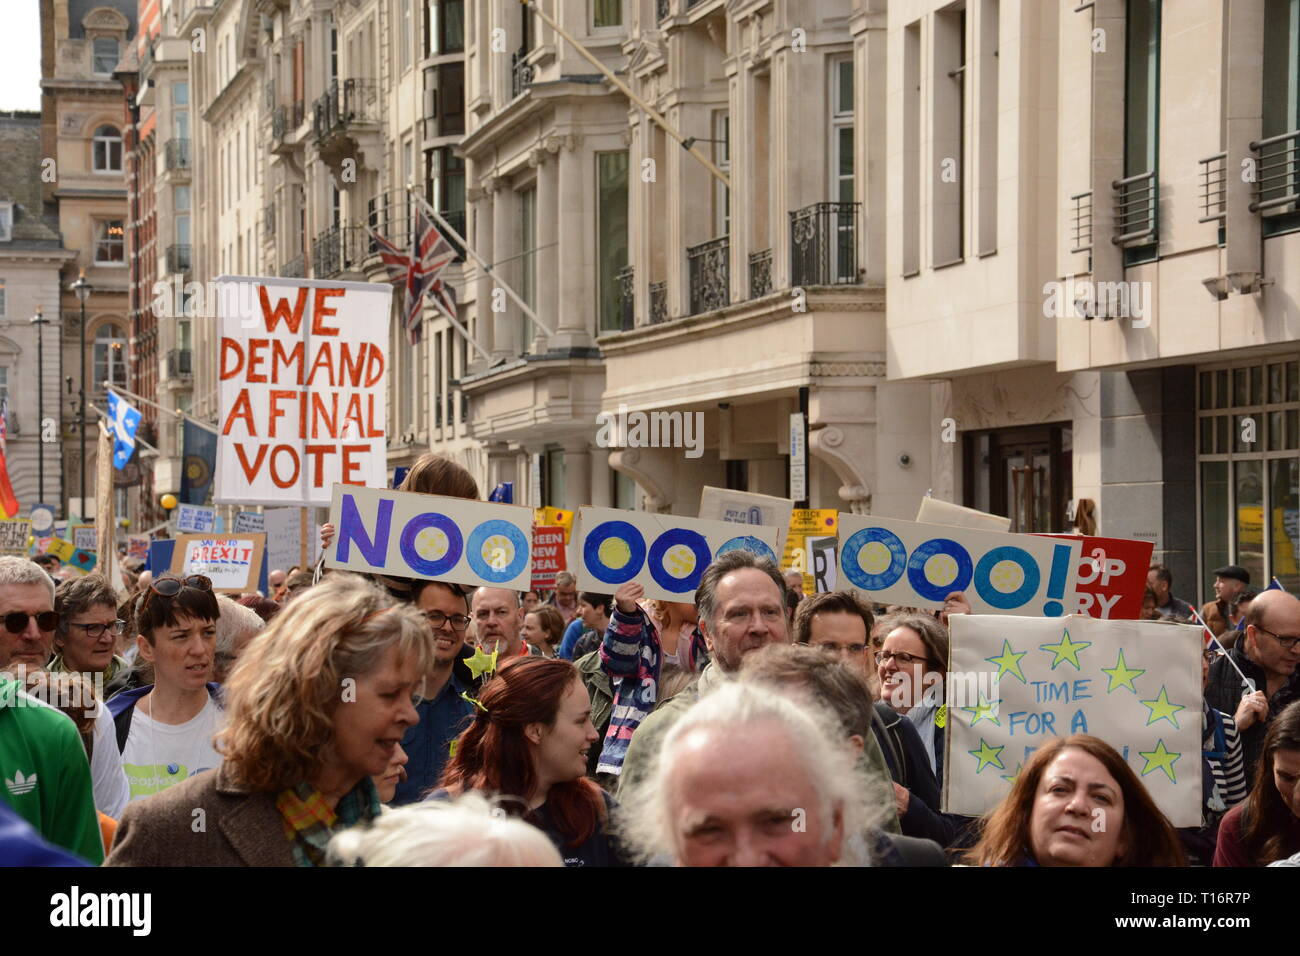 Put it to the People March in London Saturday 23rd March 2019. - Stock Image